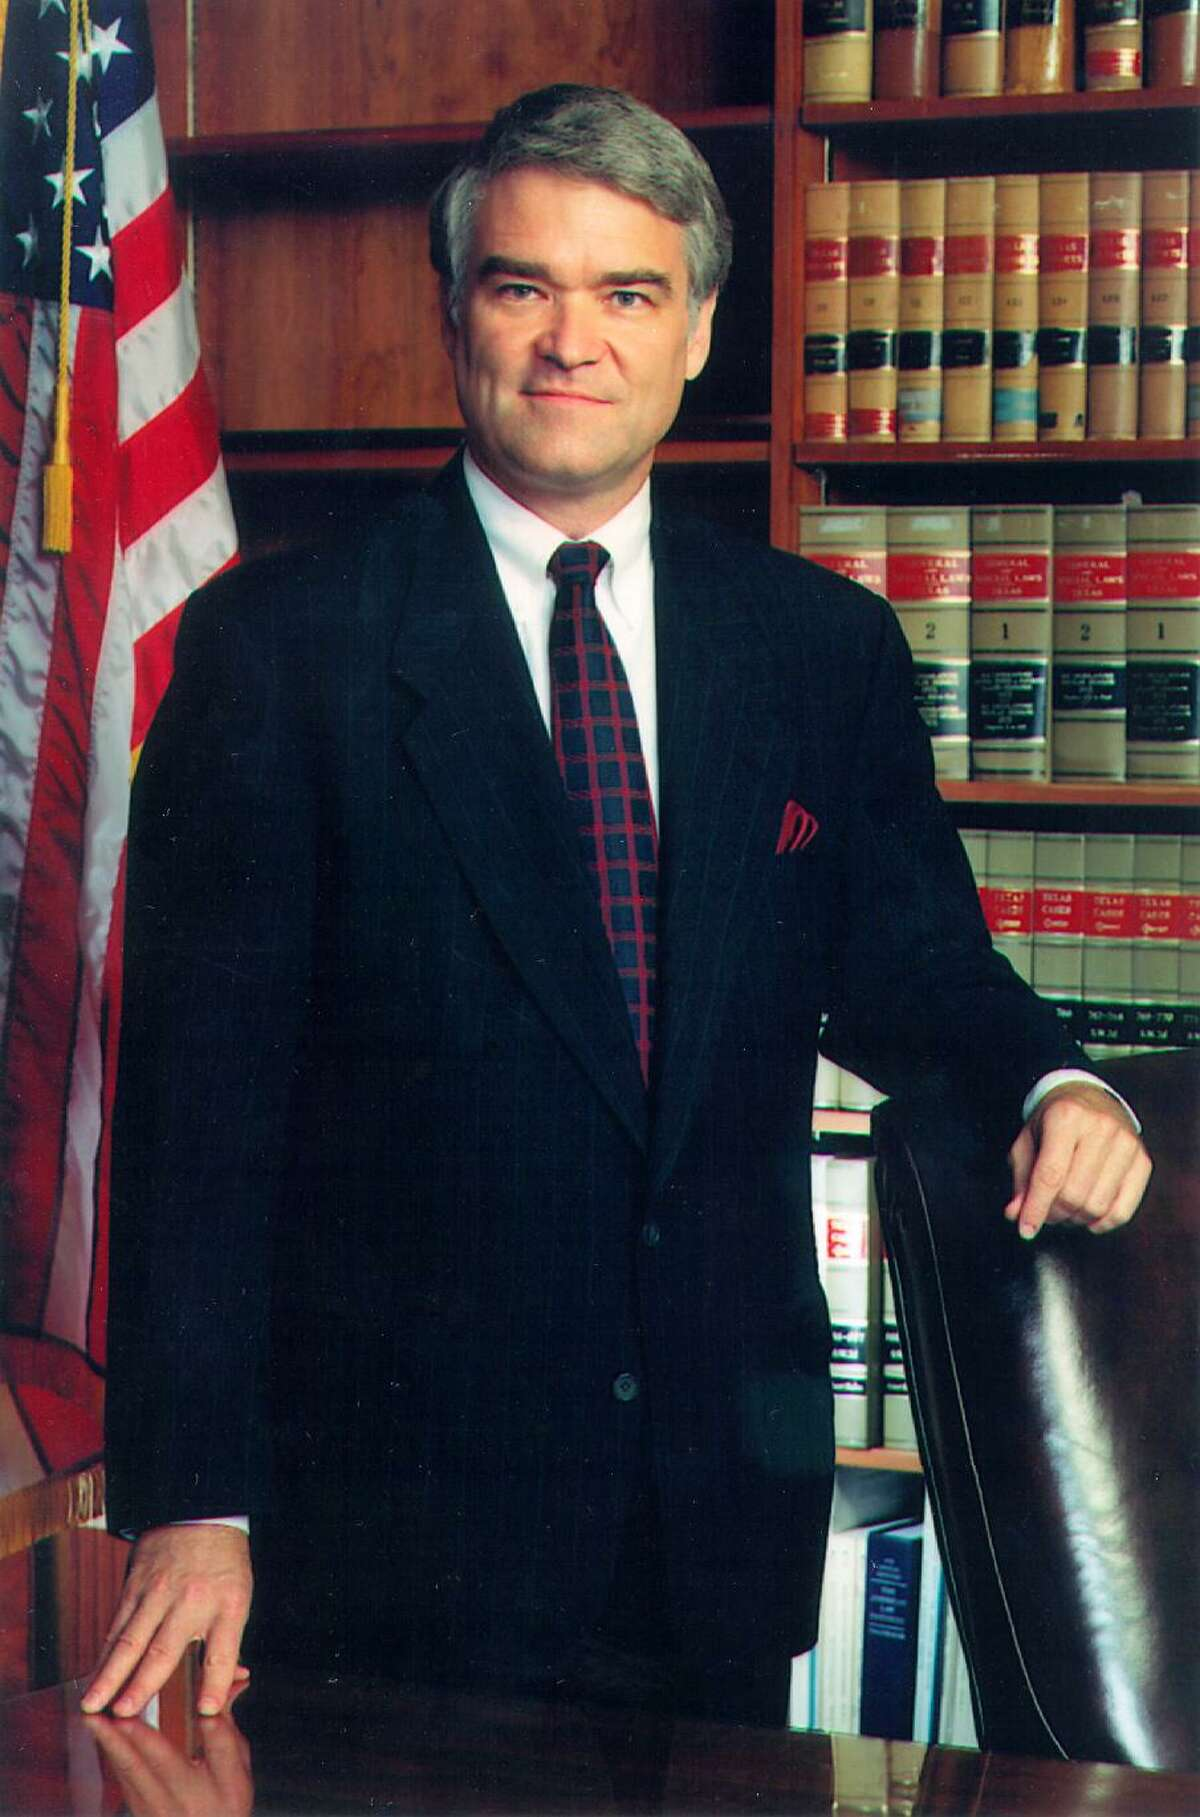 State Supreme Court Justice Nathan Hecht has advocated non-partisan elections for judges and judges by merit appointment. These are worthy ideas, another was just passed by the Legislature - the end of straight-party voting.